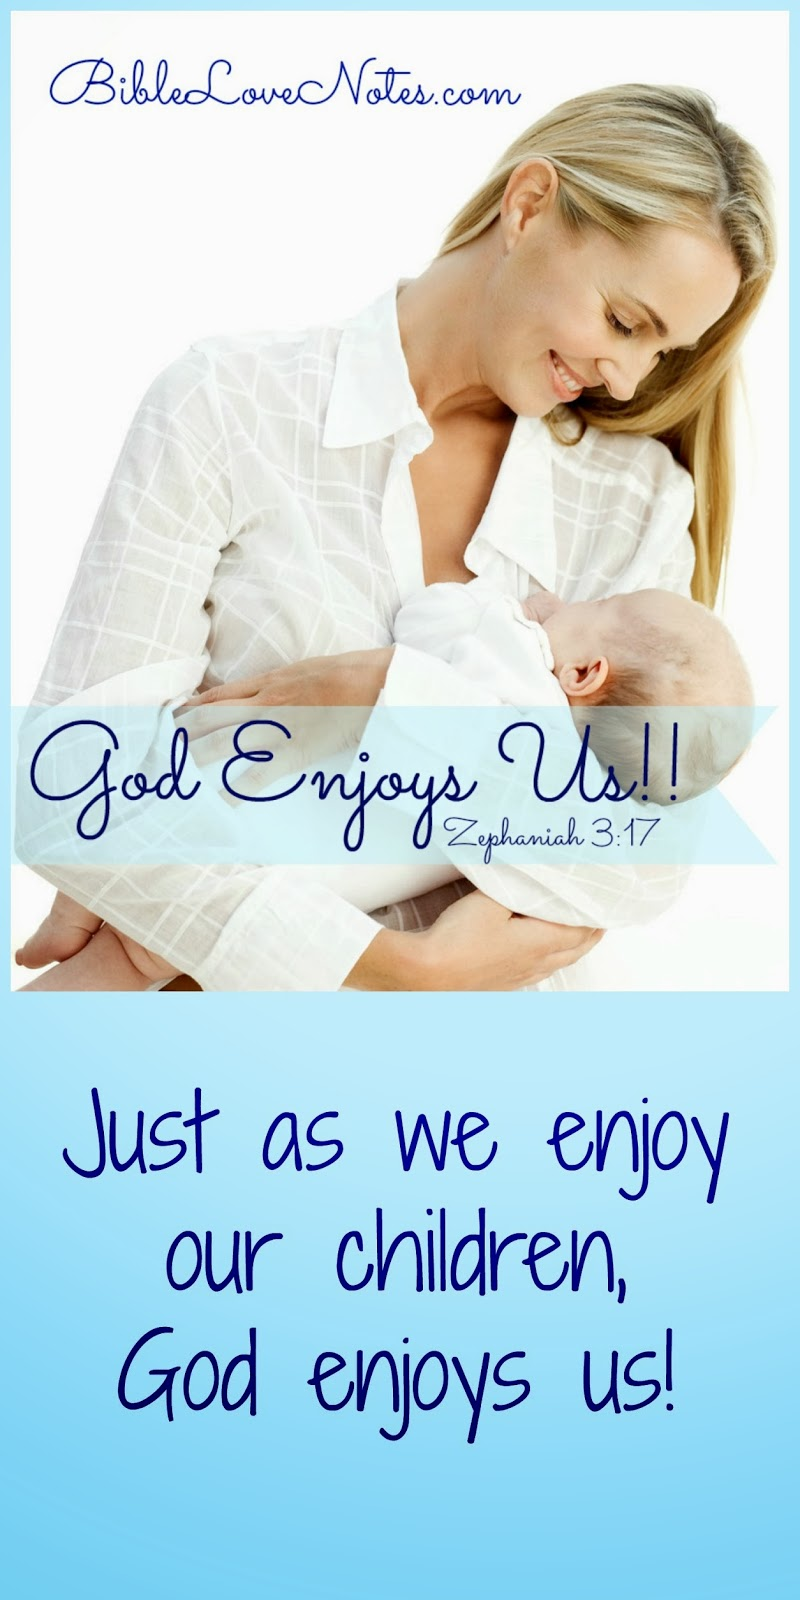 God enjoys us, Zephaniah 3:17